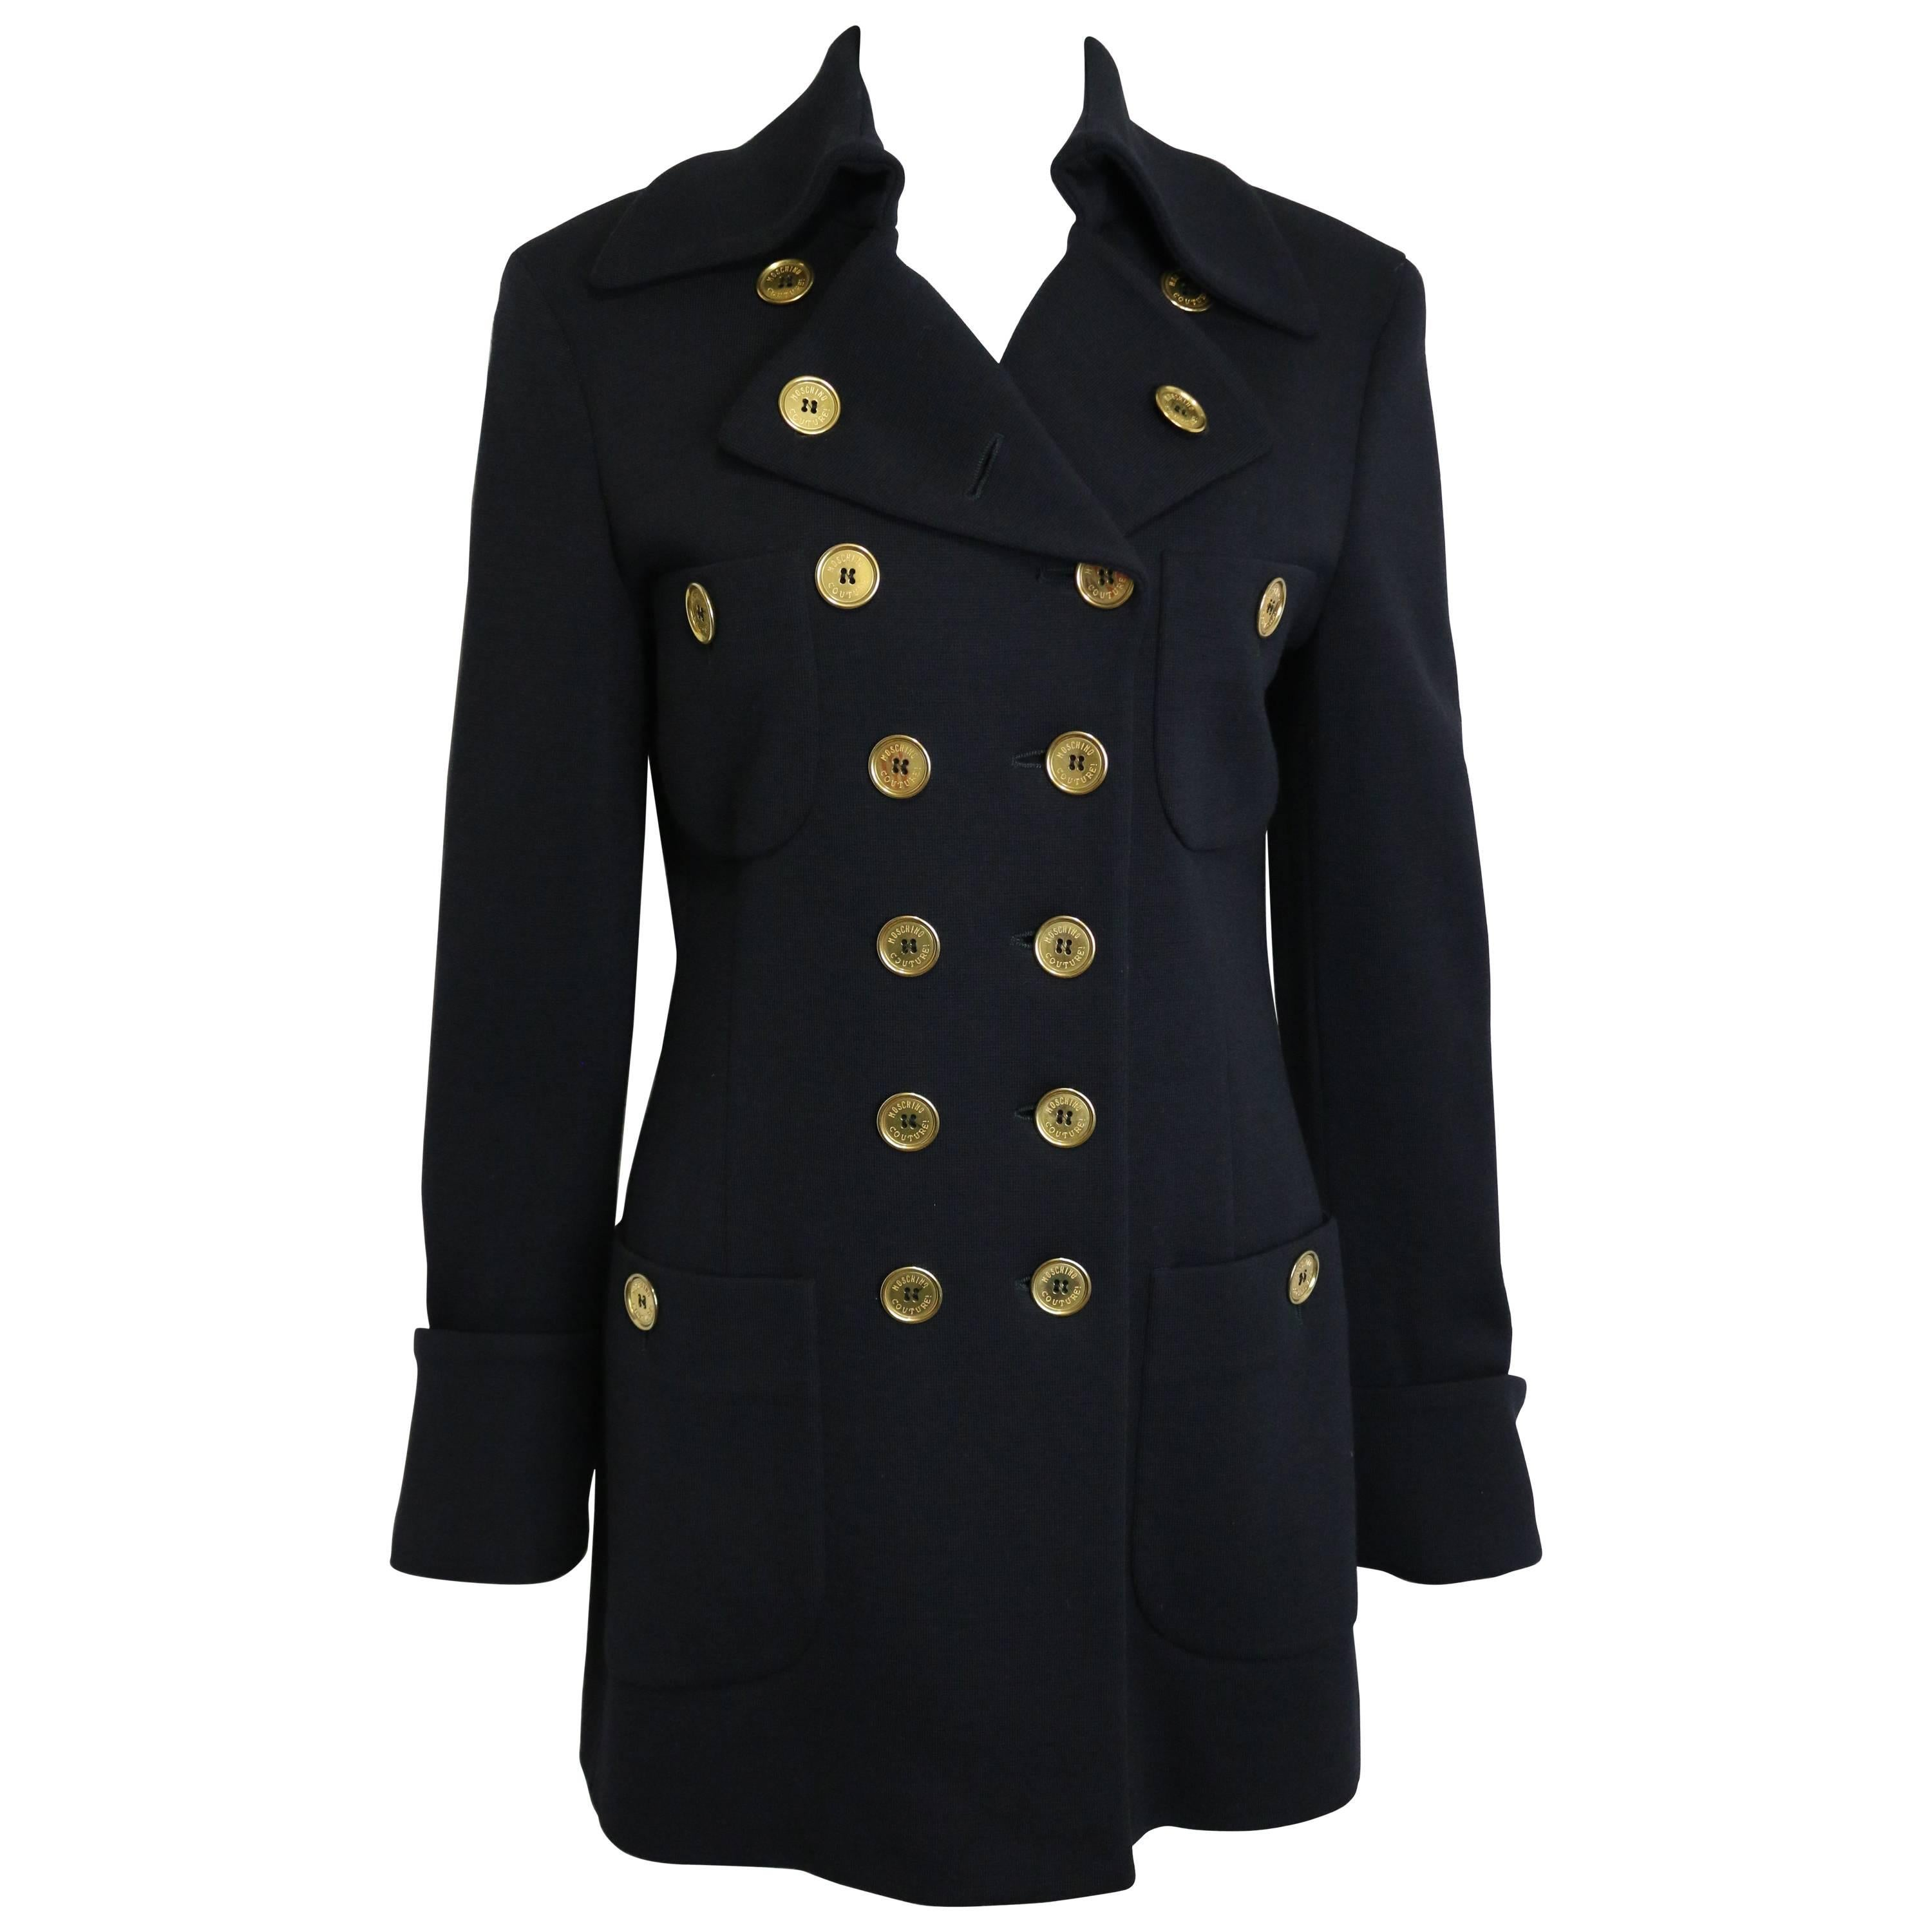 Vintage 90s Moschino Couture Black Wool Gold Buttons Double Breasted Jacket